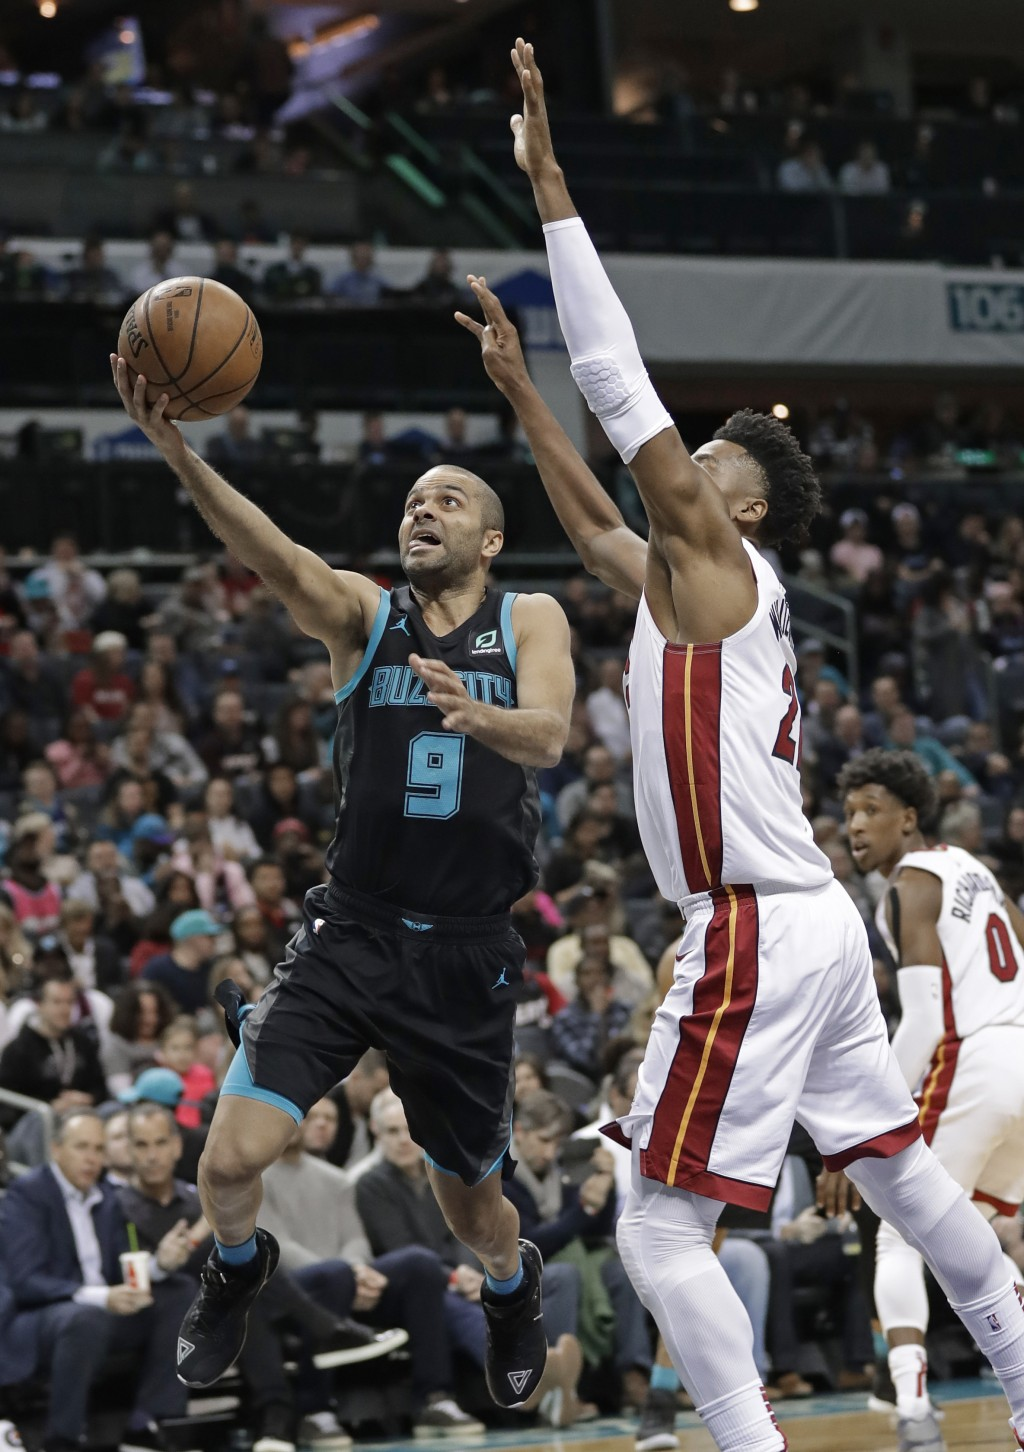 Charlotte Hornets' Tony Parker (9) drives past Miami Heat's Hassan Whiteside during the first half of an NBA basketball game in Charlotte, N.C., Wedne